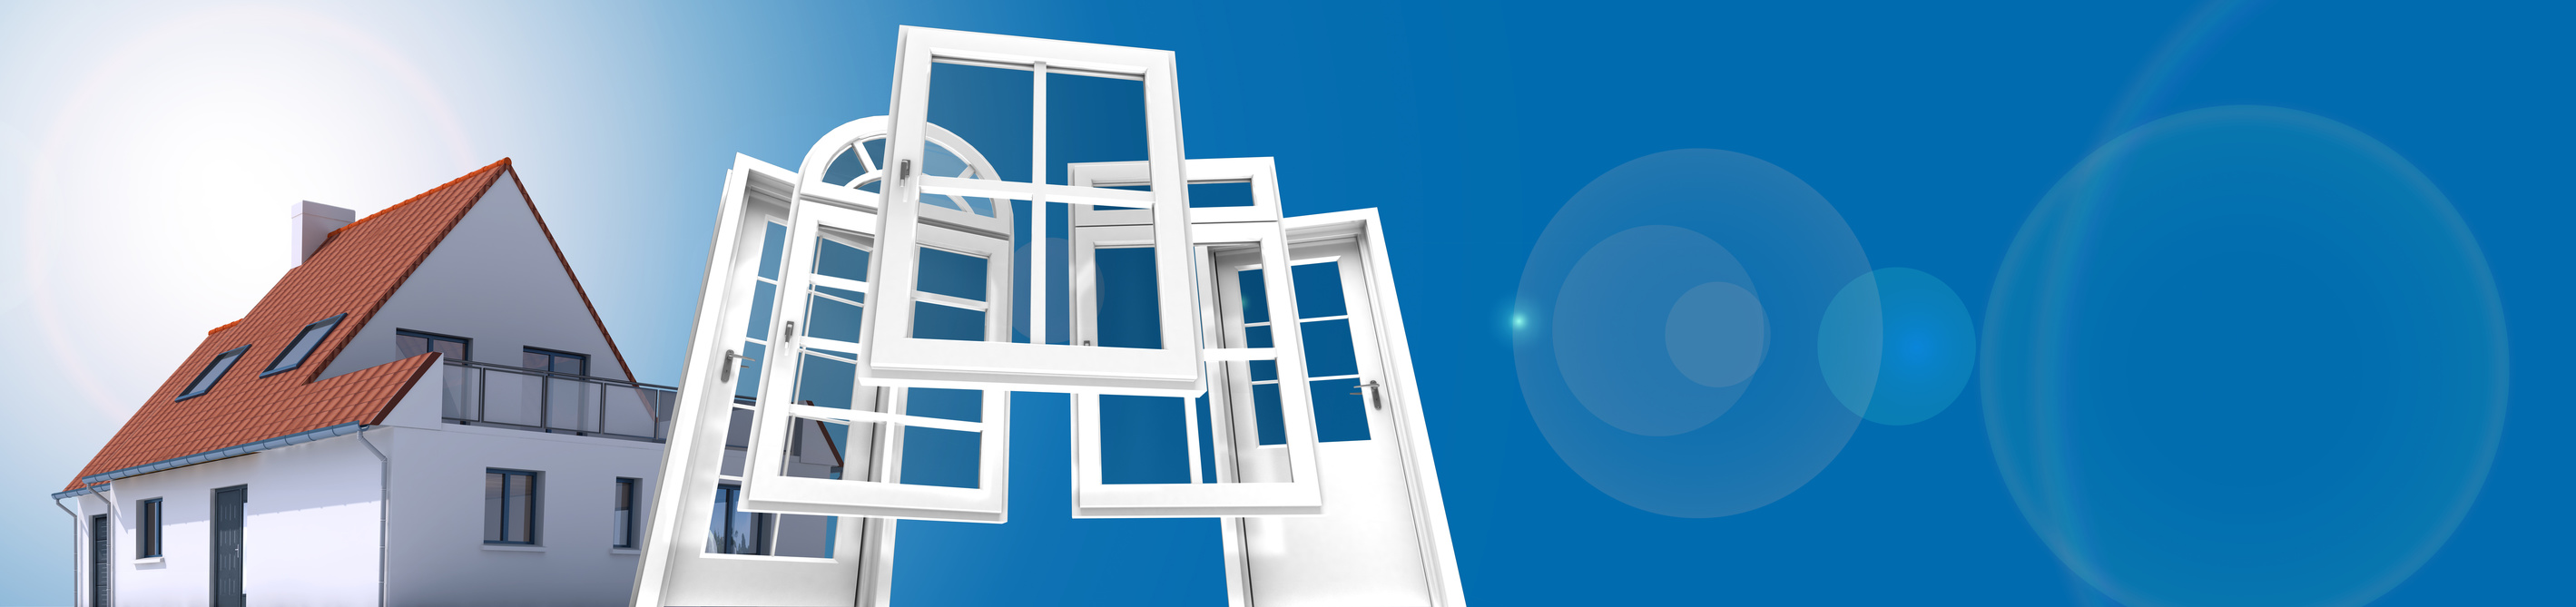 How to choose replacement windows in virginia beach for Choosing replacement windows